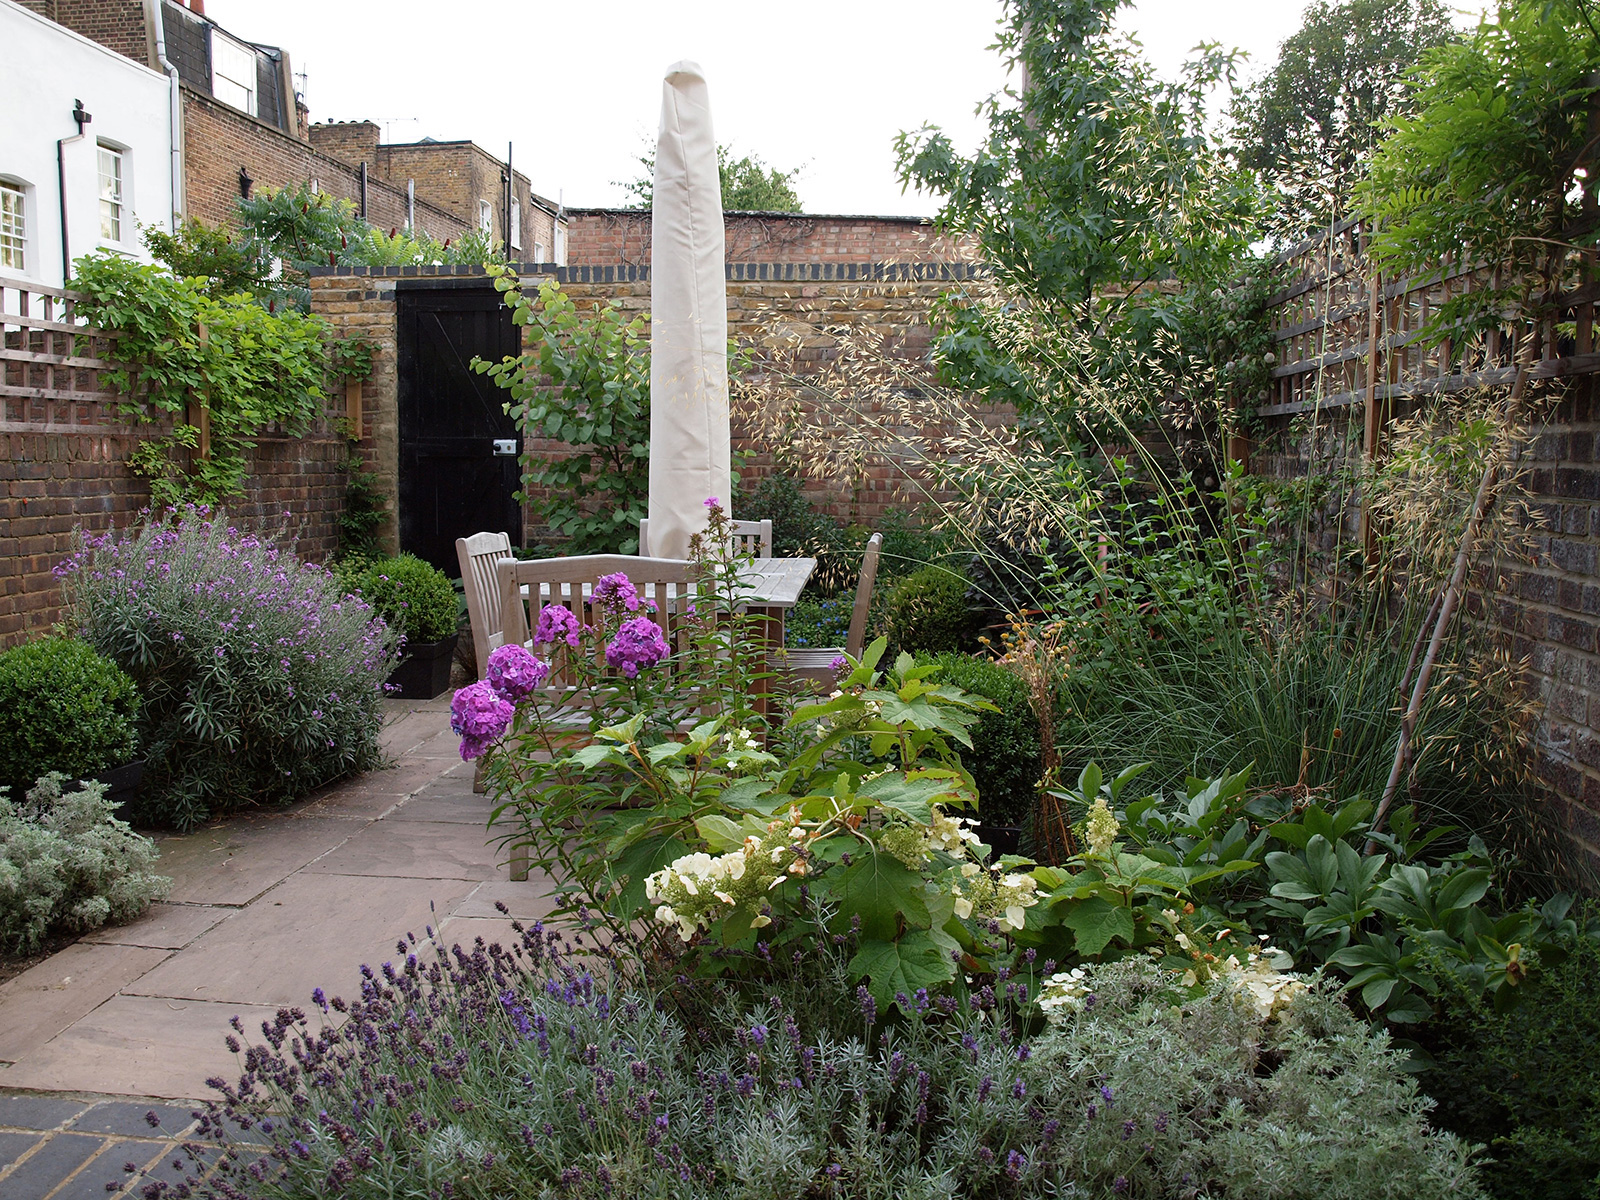 This sunny town garden was photographed in the first season after planting.